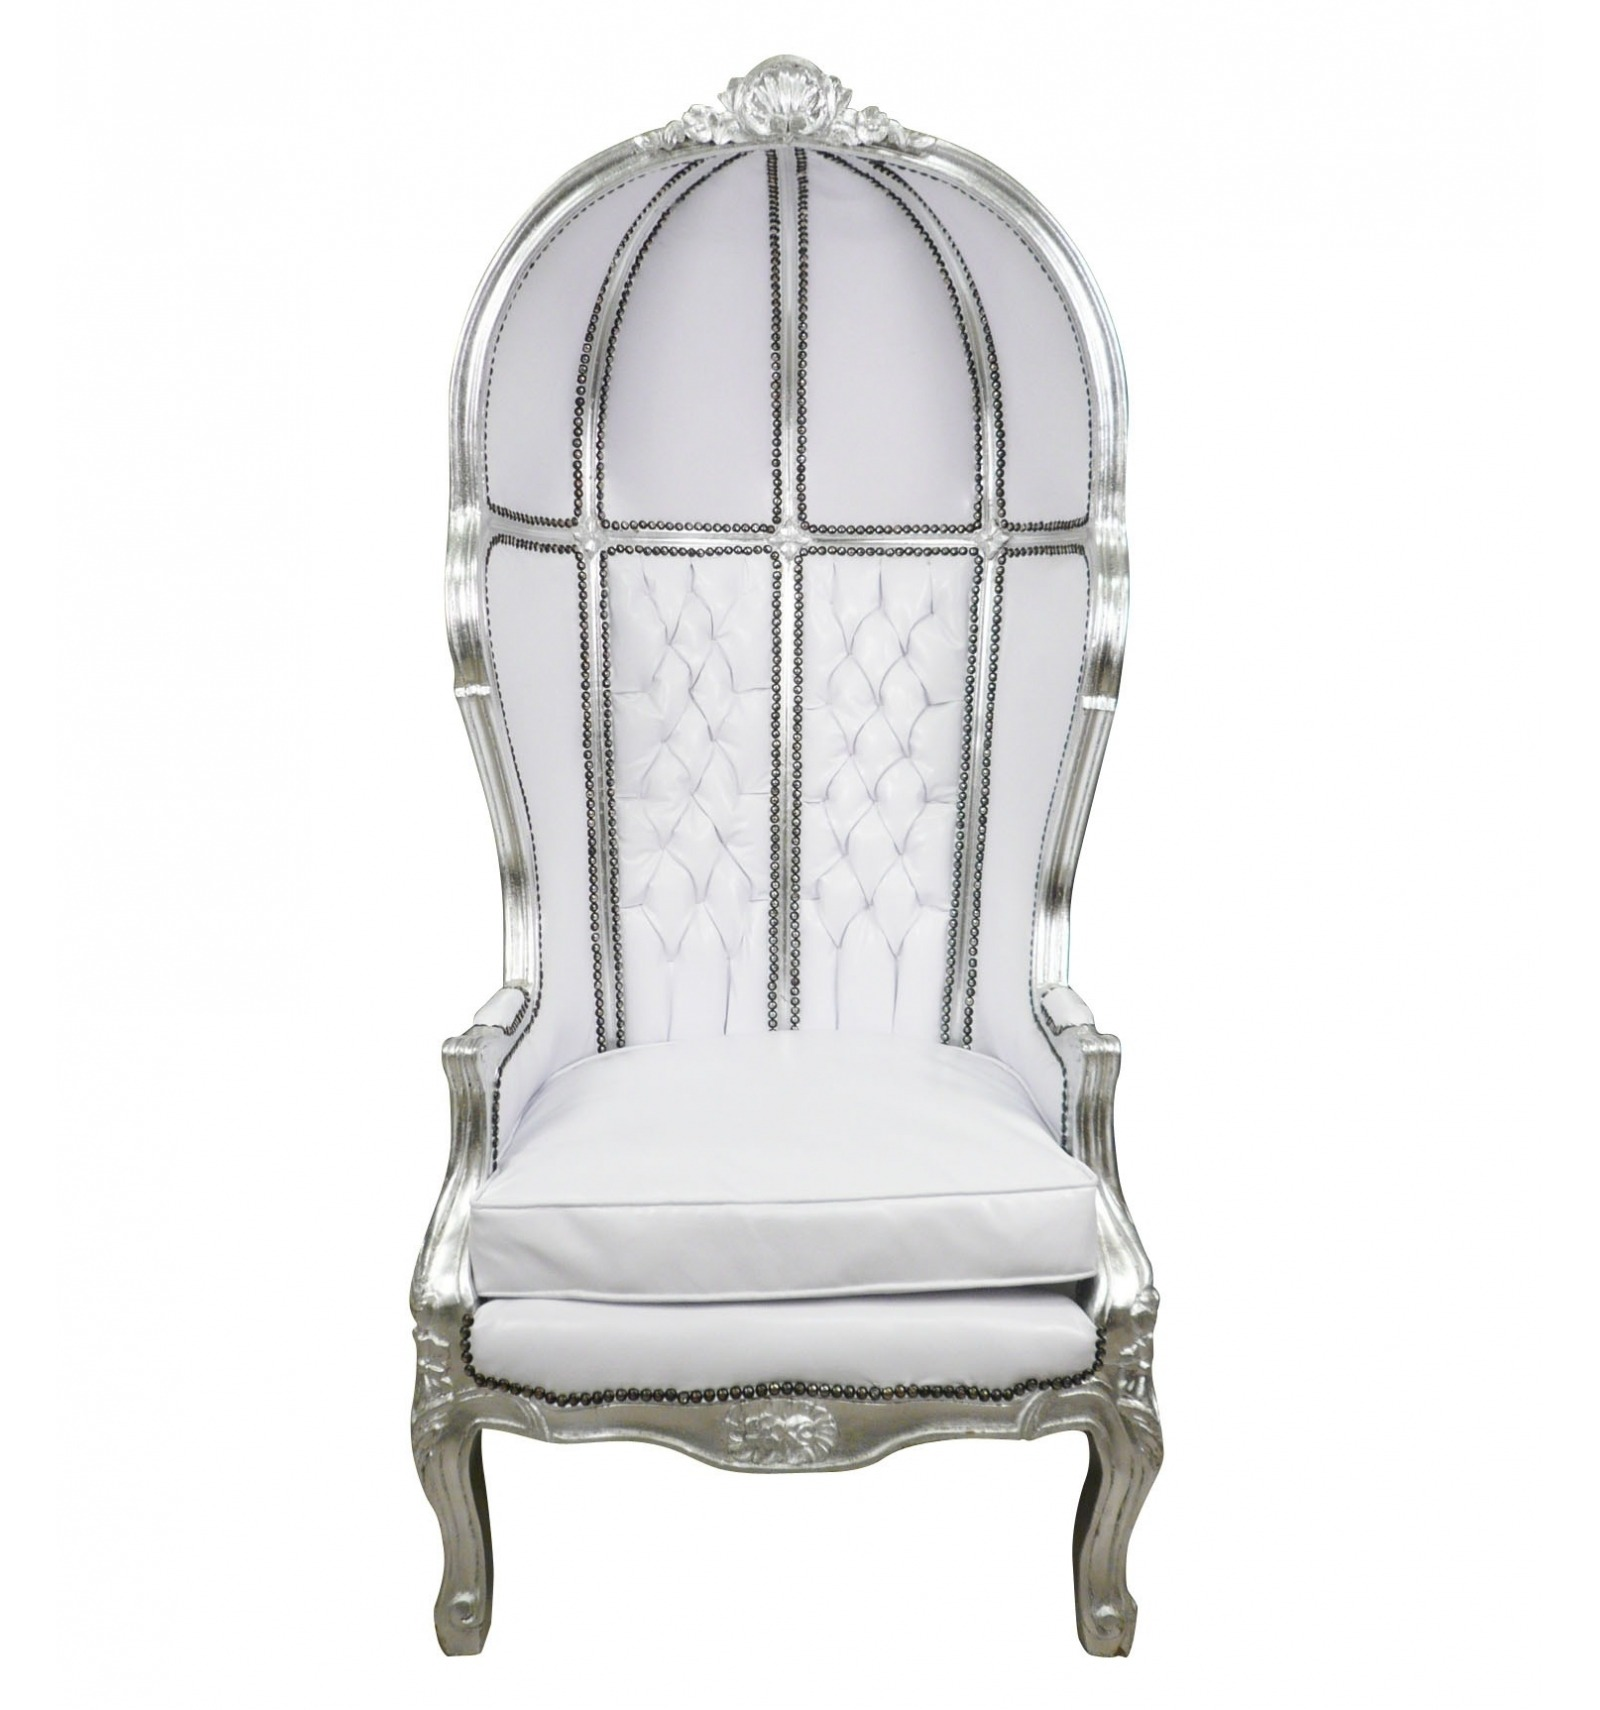 chair baroque white carriage and furniture baroque. Black Bedroom Furniture Sets. Home Design Ideas